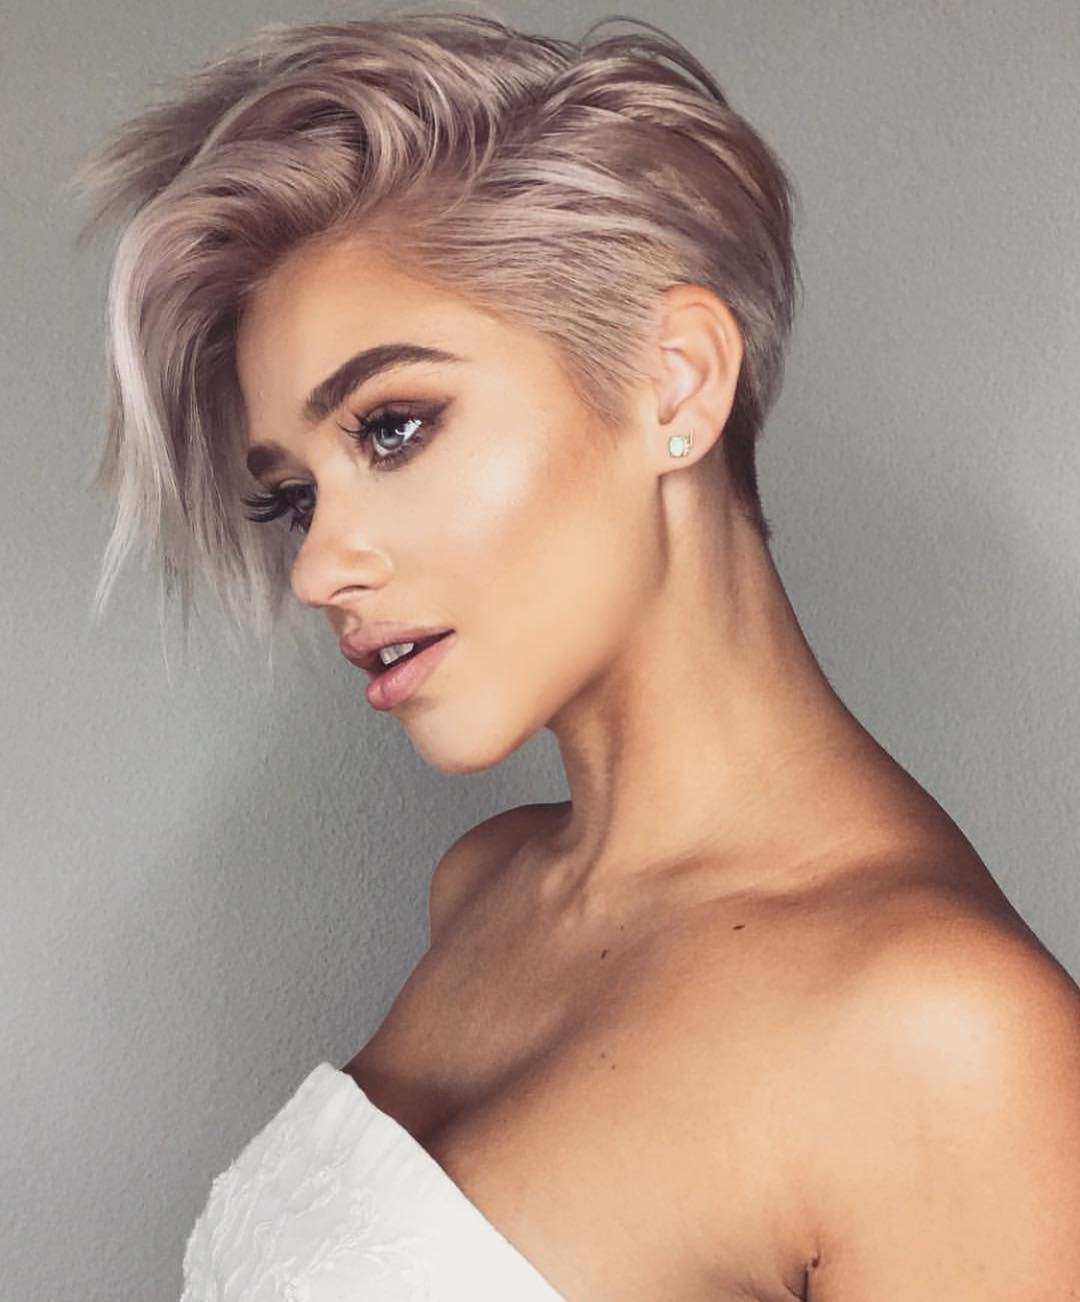 Best ideas about Hairstyle 2019 Female . Save or Pin 10 Trendy Very Short Haircuts for Female Cool Short Hair Now.